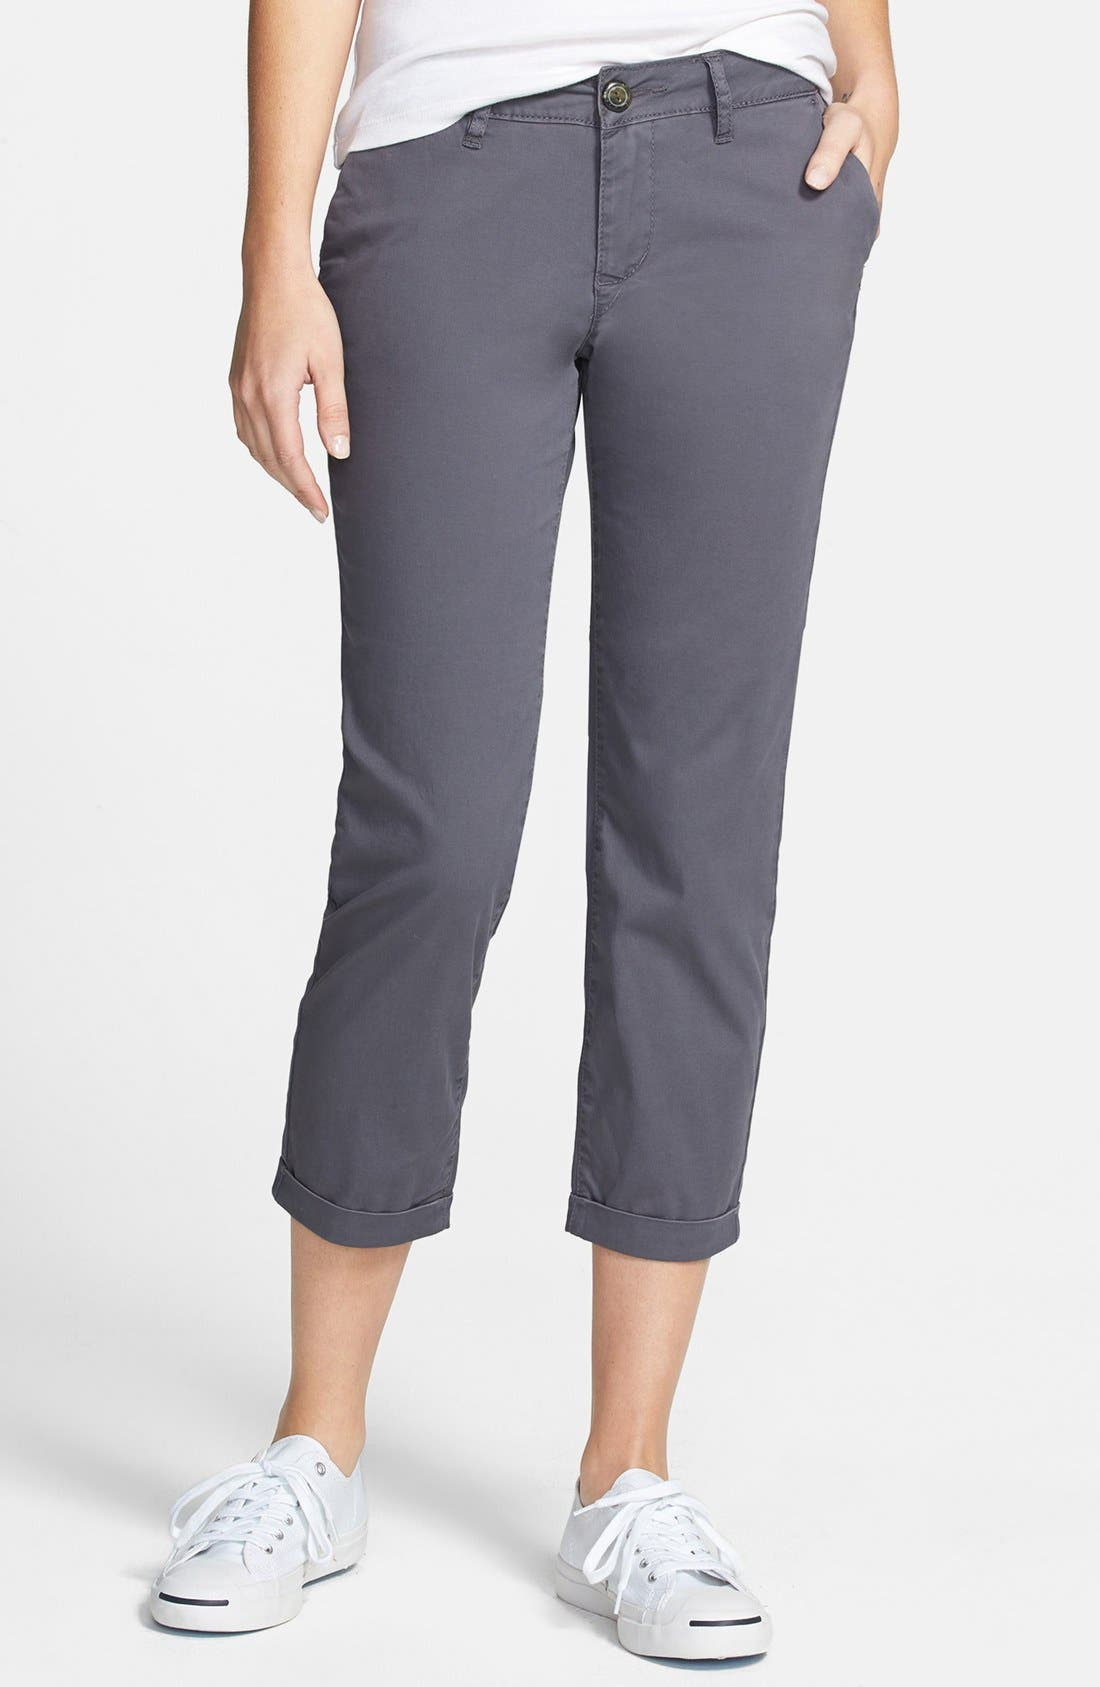 Alternate Image 1 Selected - Jag Jeans 'Cora' Slim Crop Stretch Twill Pants (Regular & Petite)